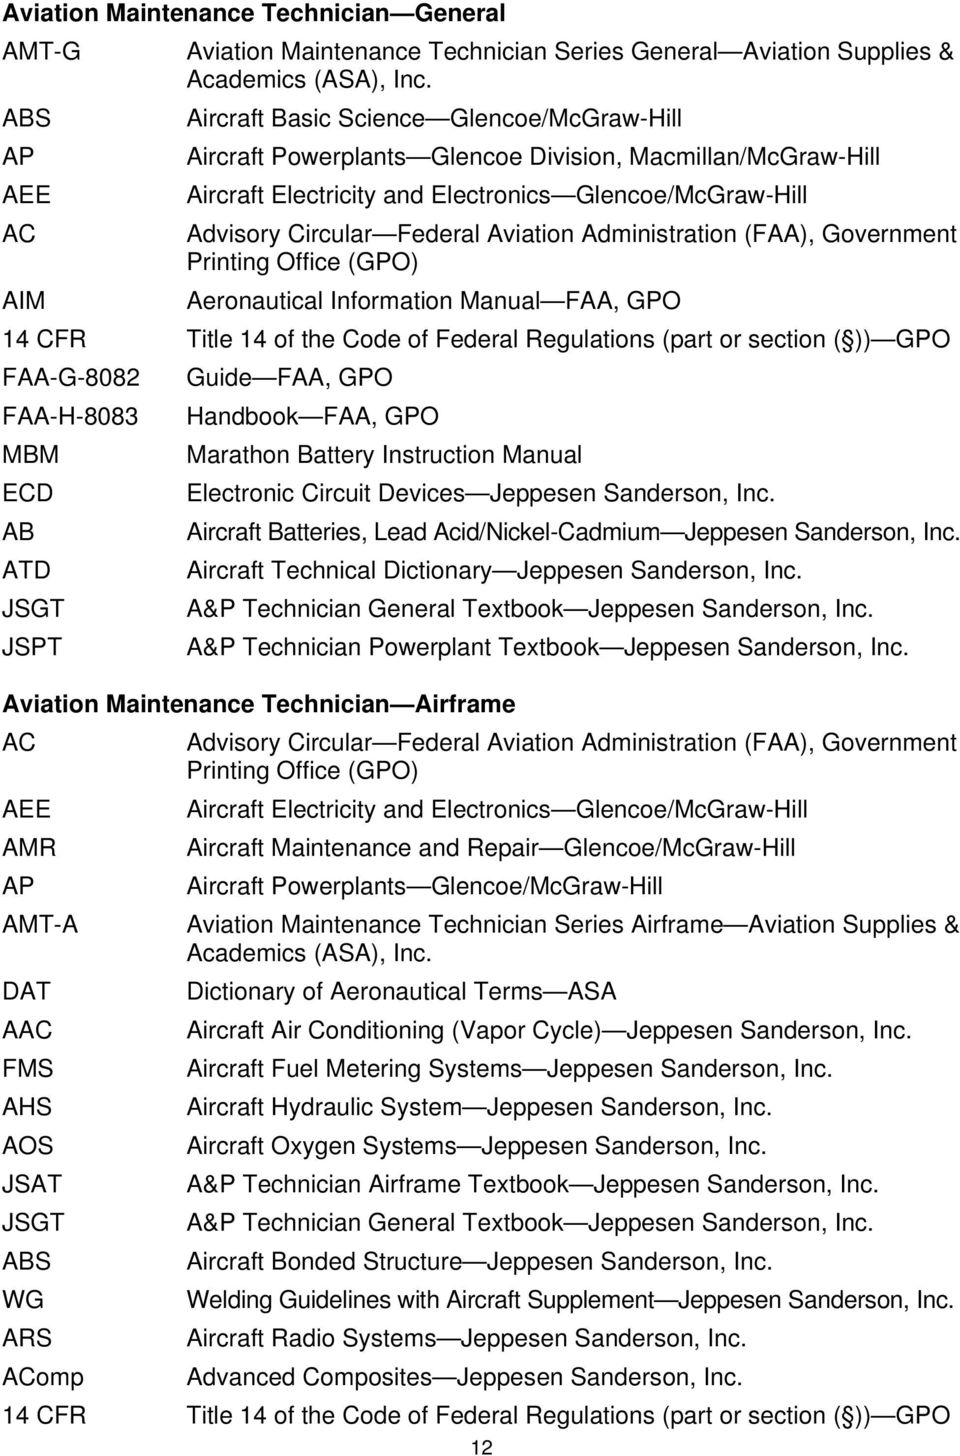 AVIATION MAINTENANCE TECHNICIAN GENERAL, AIRFRAME, AND